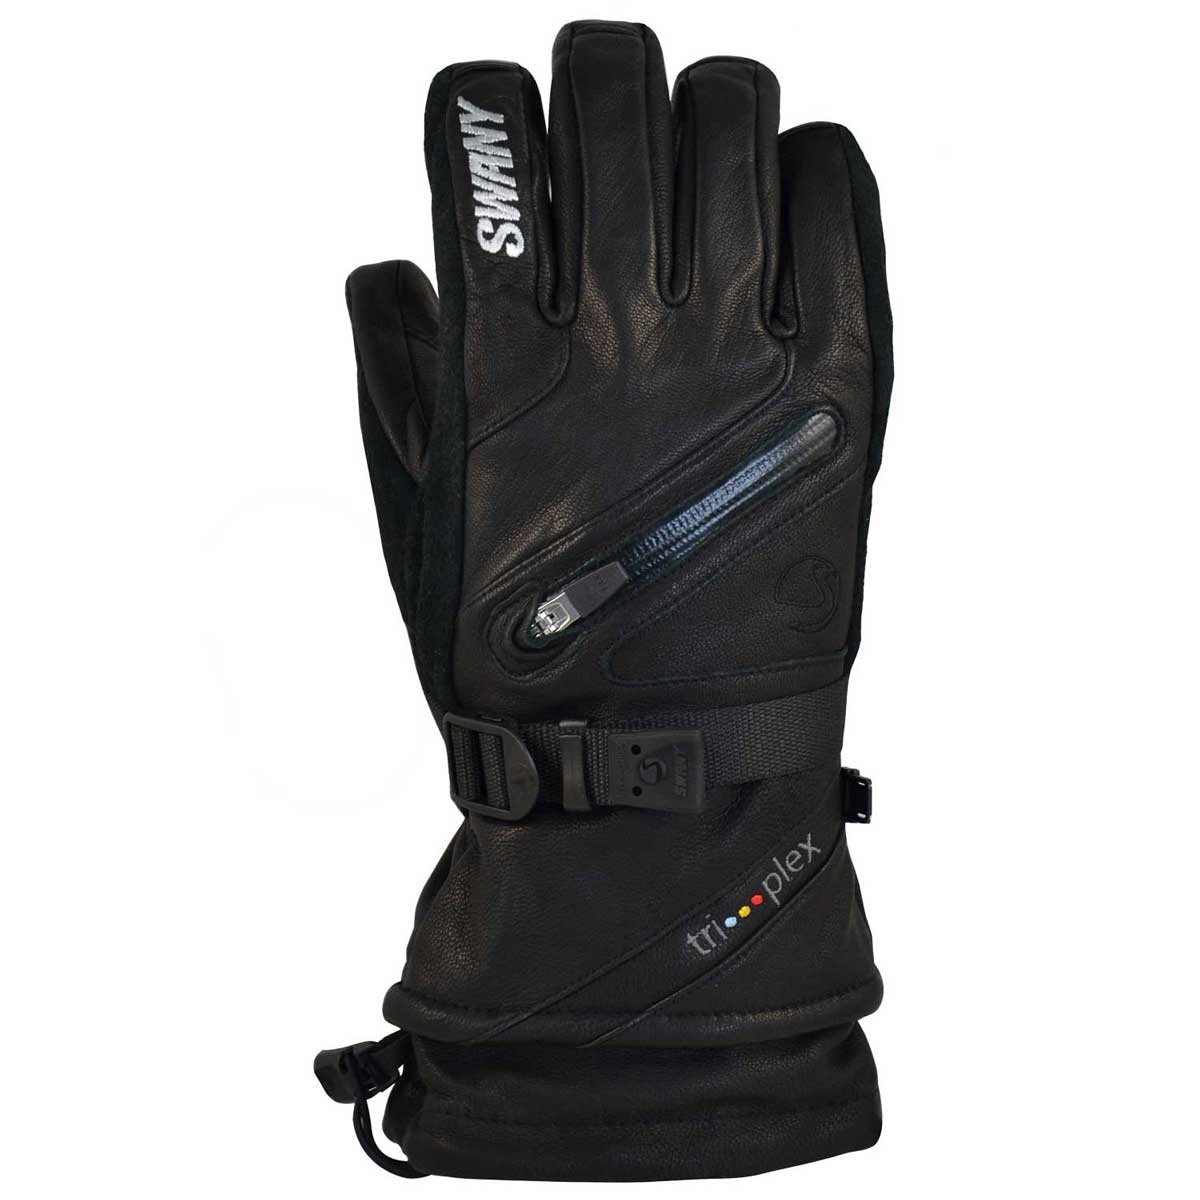 Swany X-Cell gloves in Black